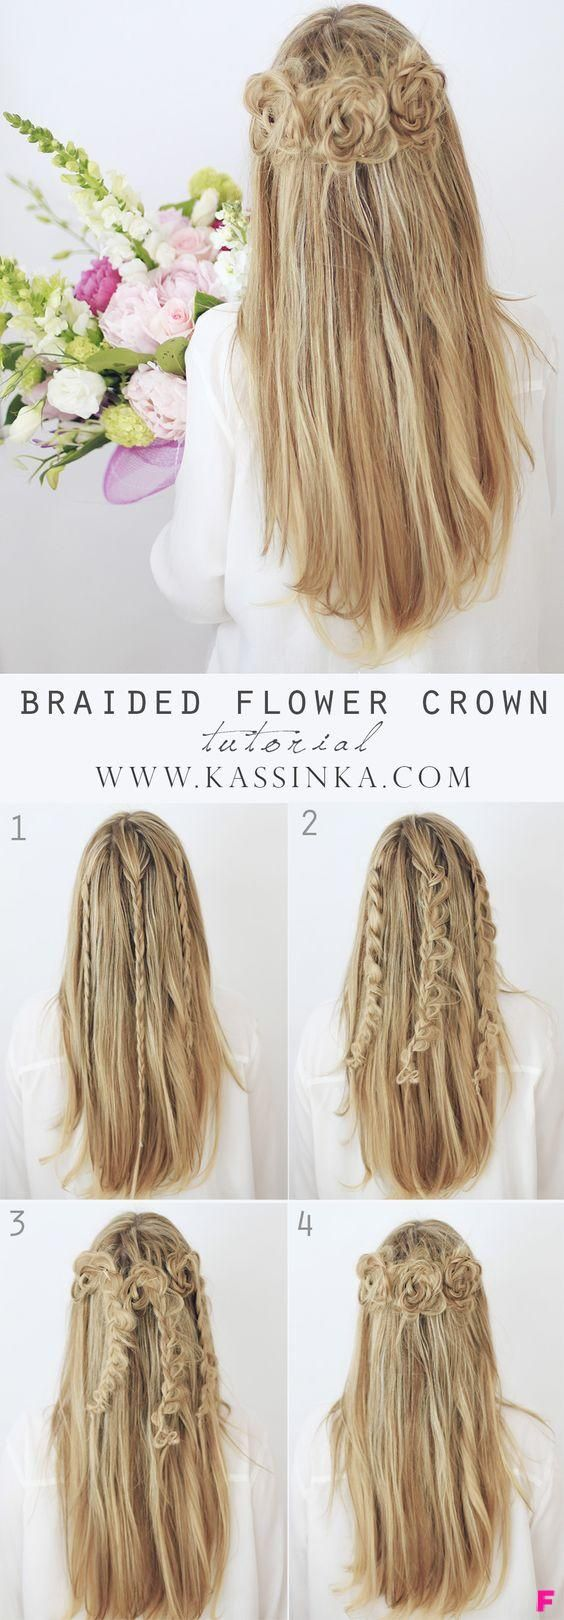 8 best Wedding hairstyles images on Pinterest | Hairstyles, Short ...